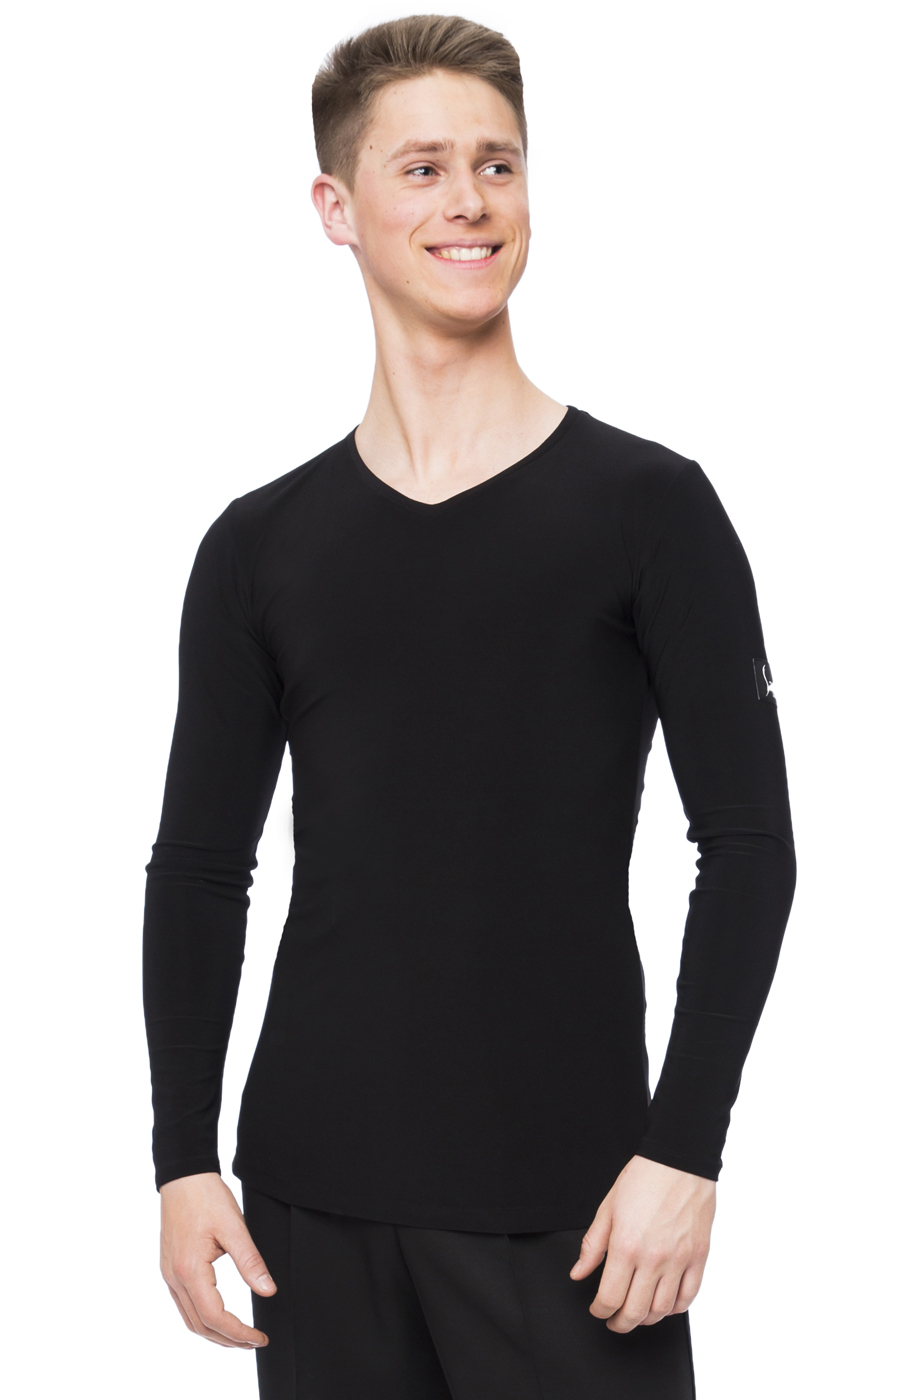 Men's practice V neck top